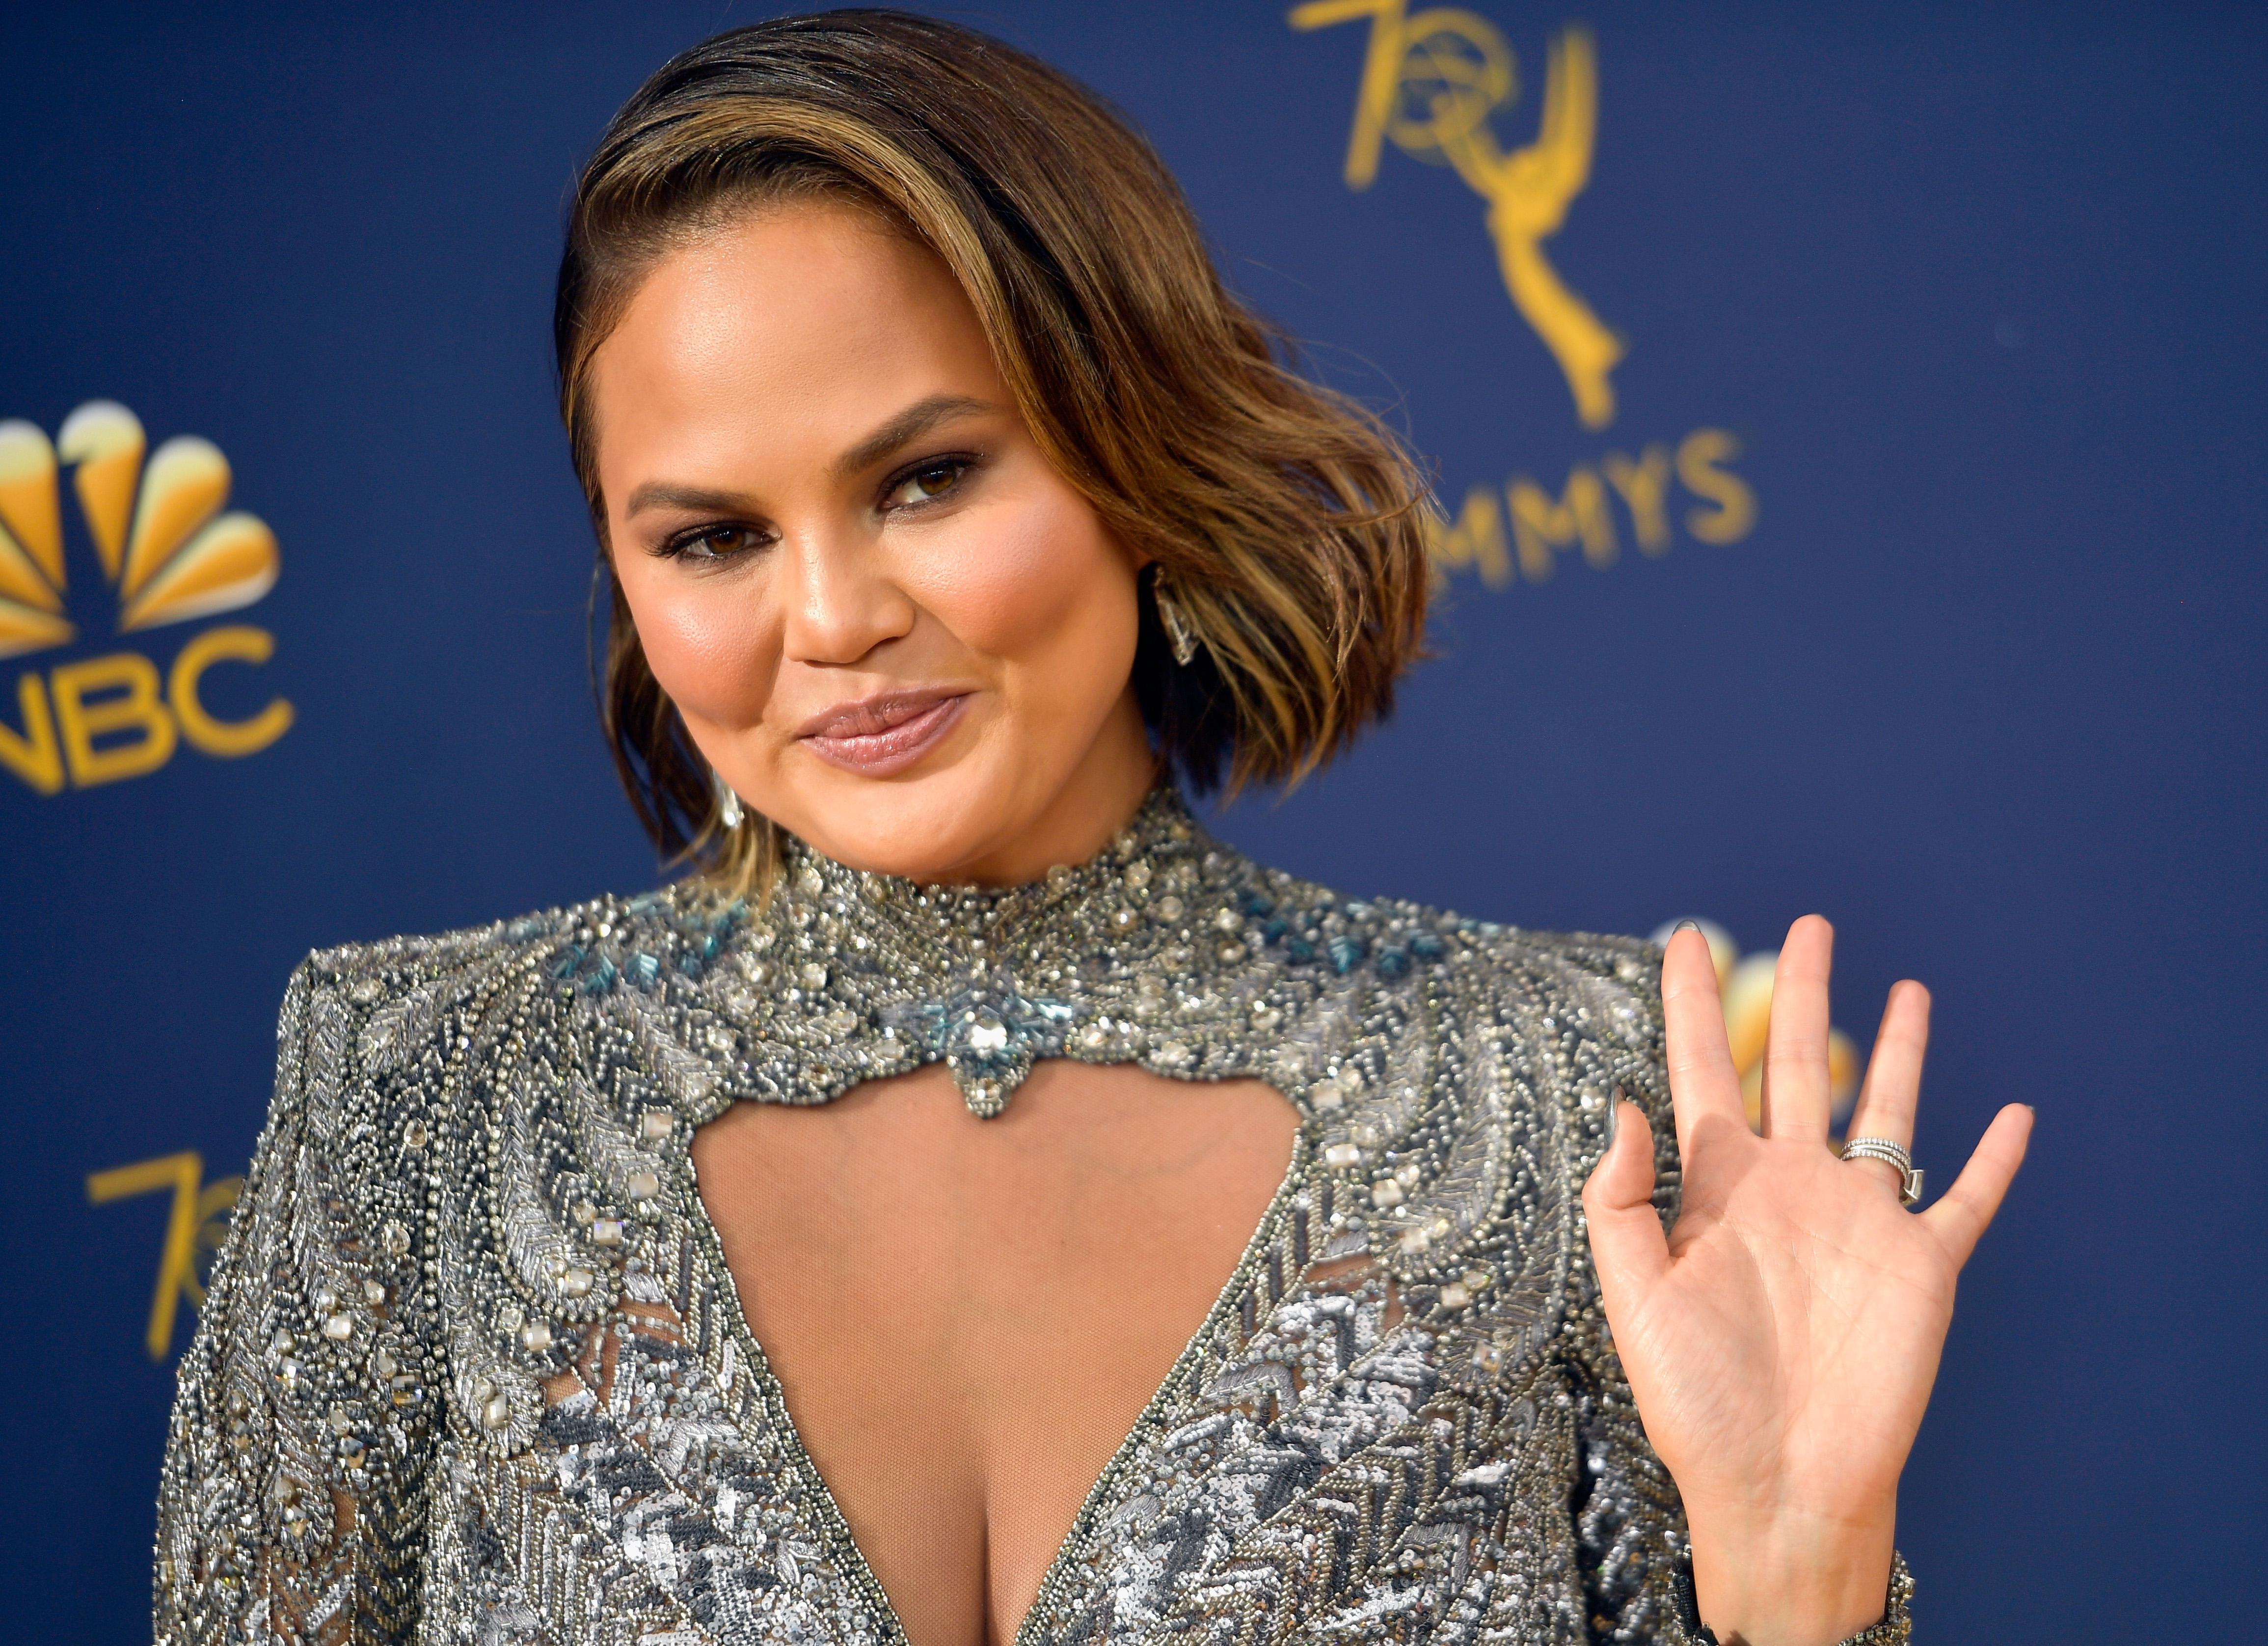 Chrissy Teigen waves at the camera, wearing a silver high-neck gown.